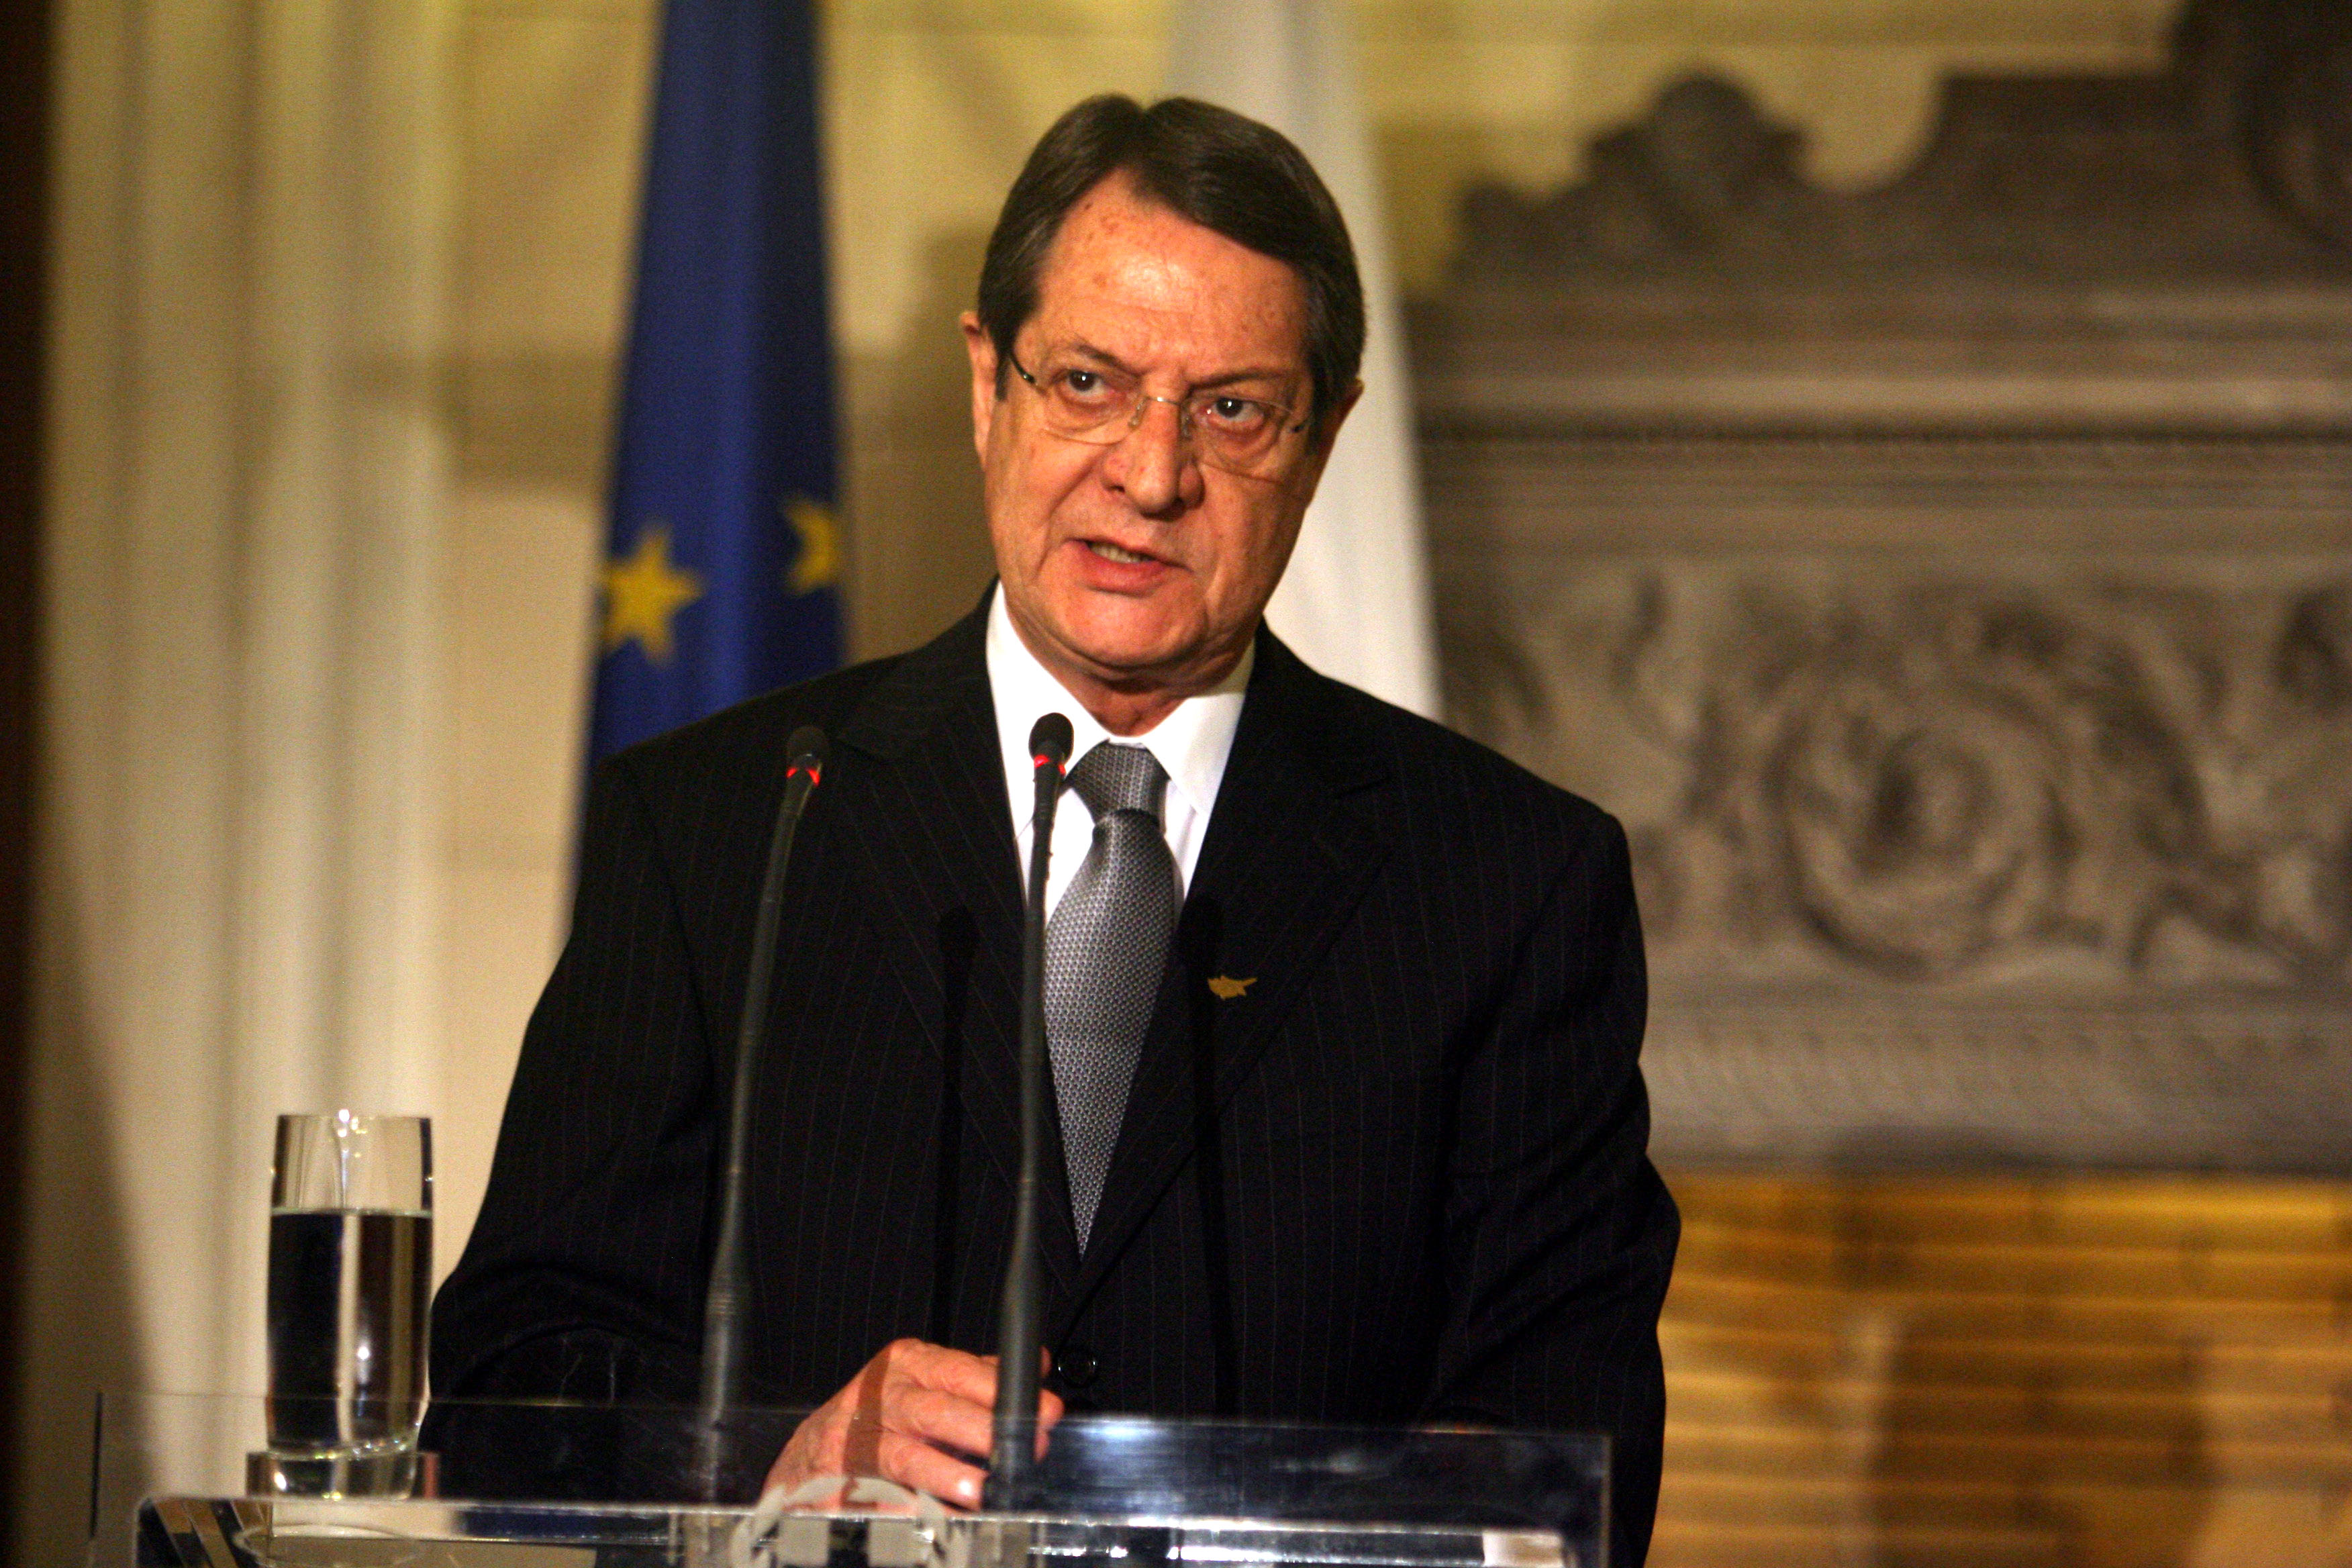 Mr Eide's ongoing public selective references are in stark contrast to the individual explanations he gave at our recent meeting on 24 July – President Anastasiades